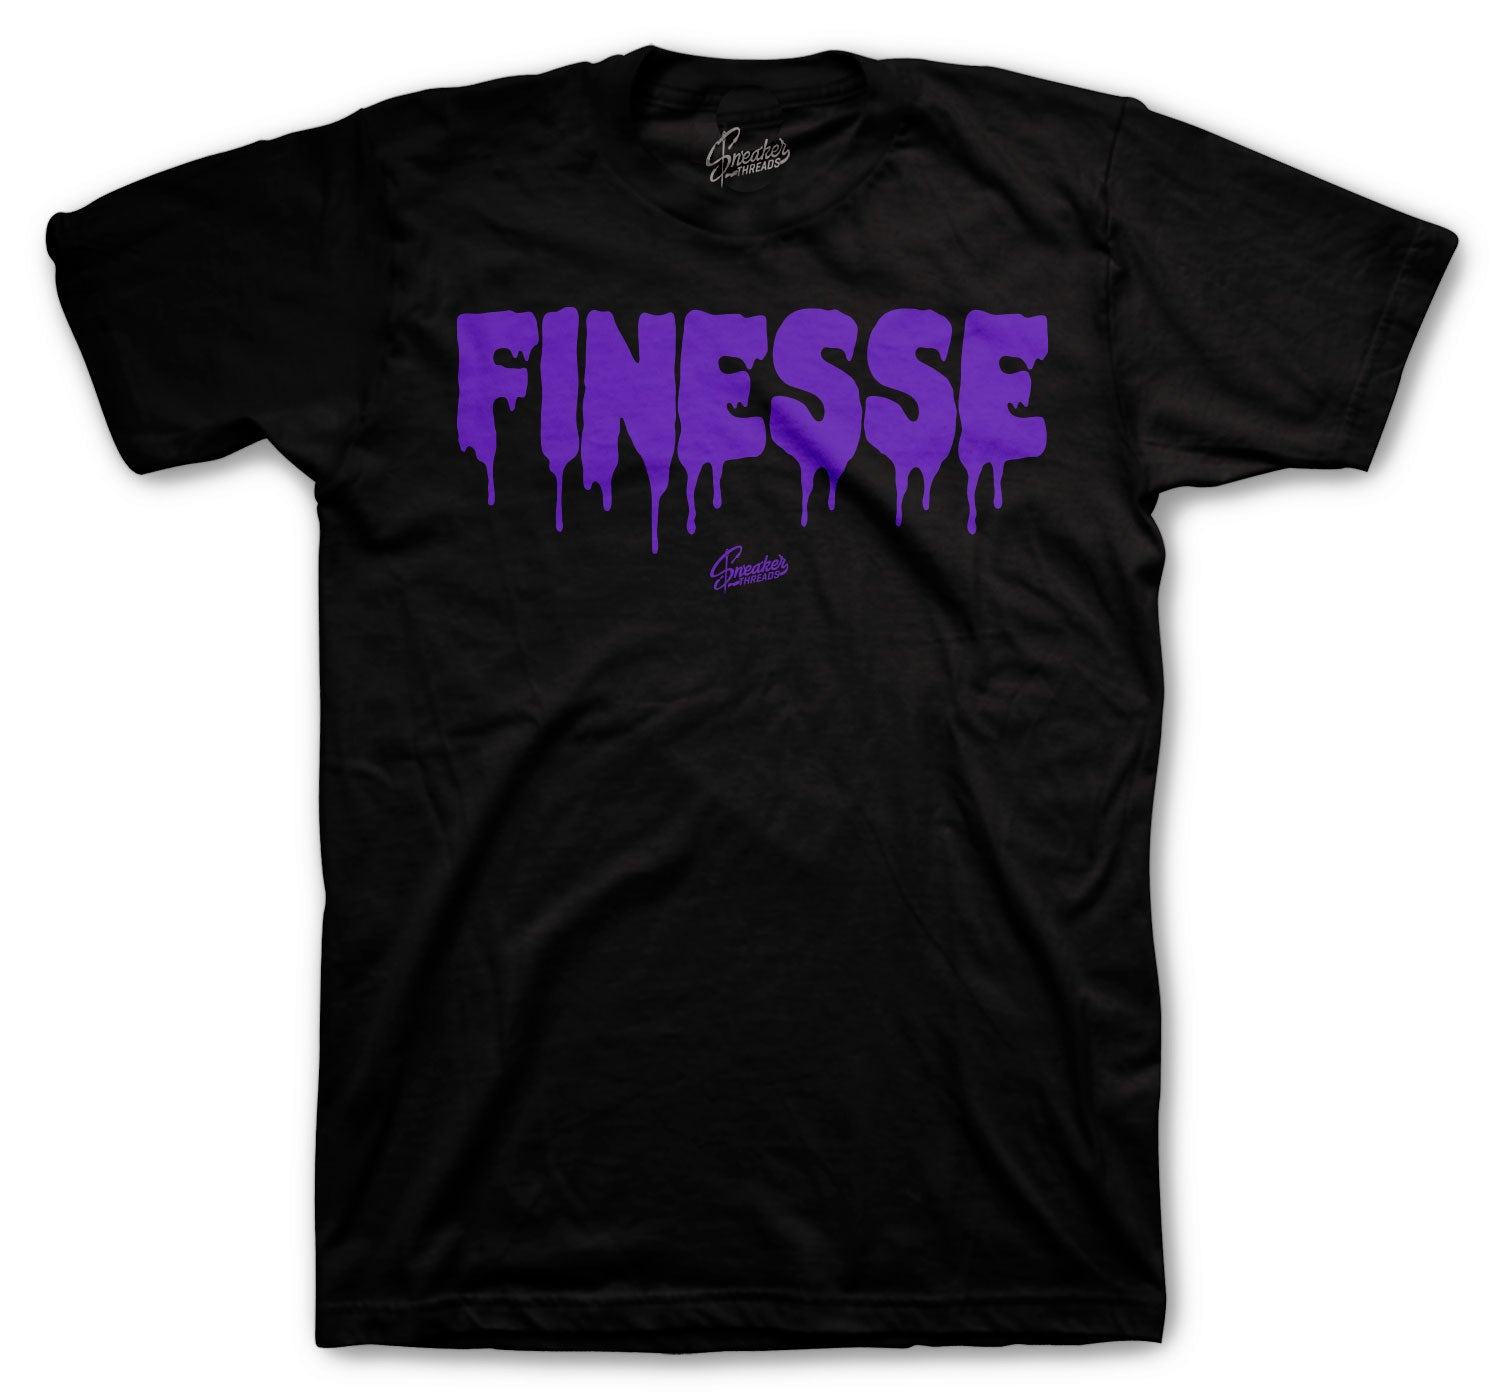 Jordan 12 Dark Concord Finesse Shirt